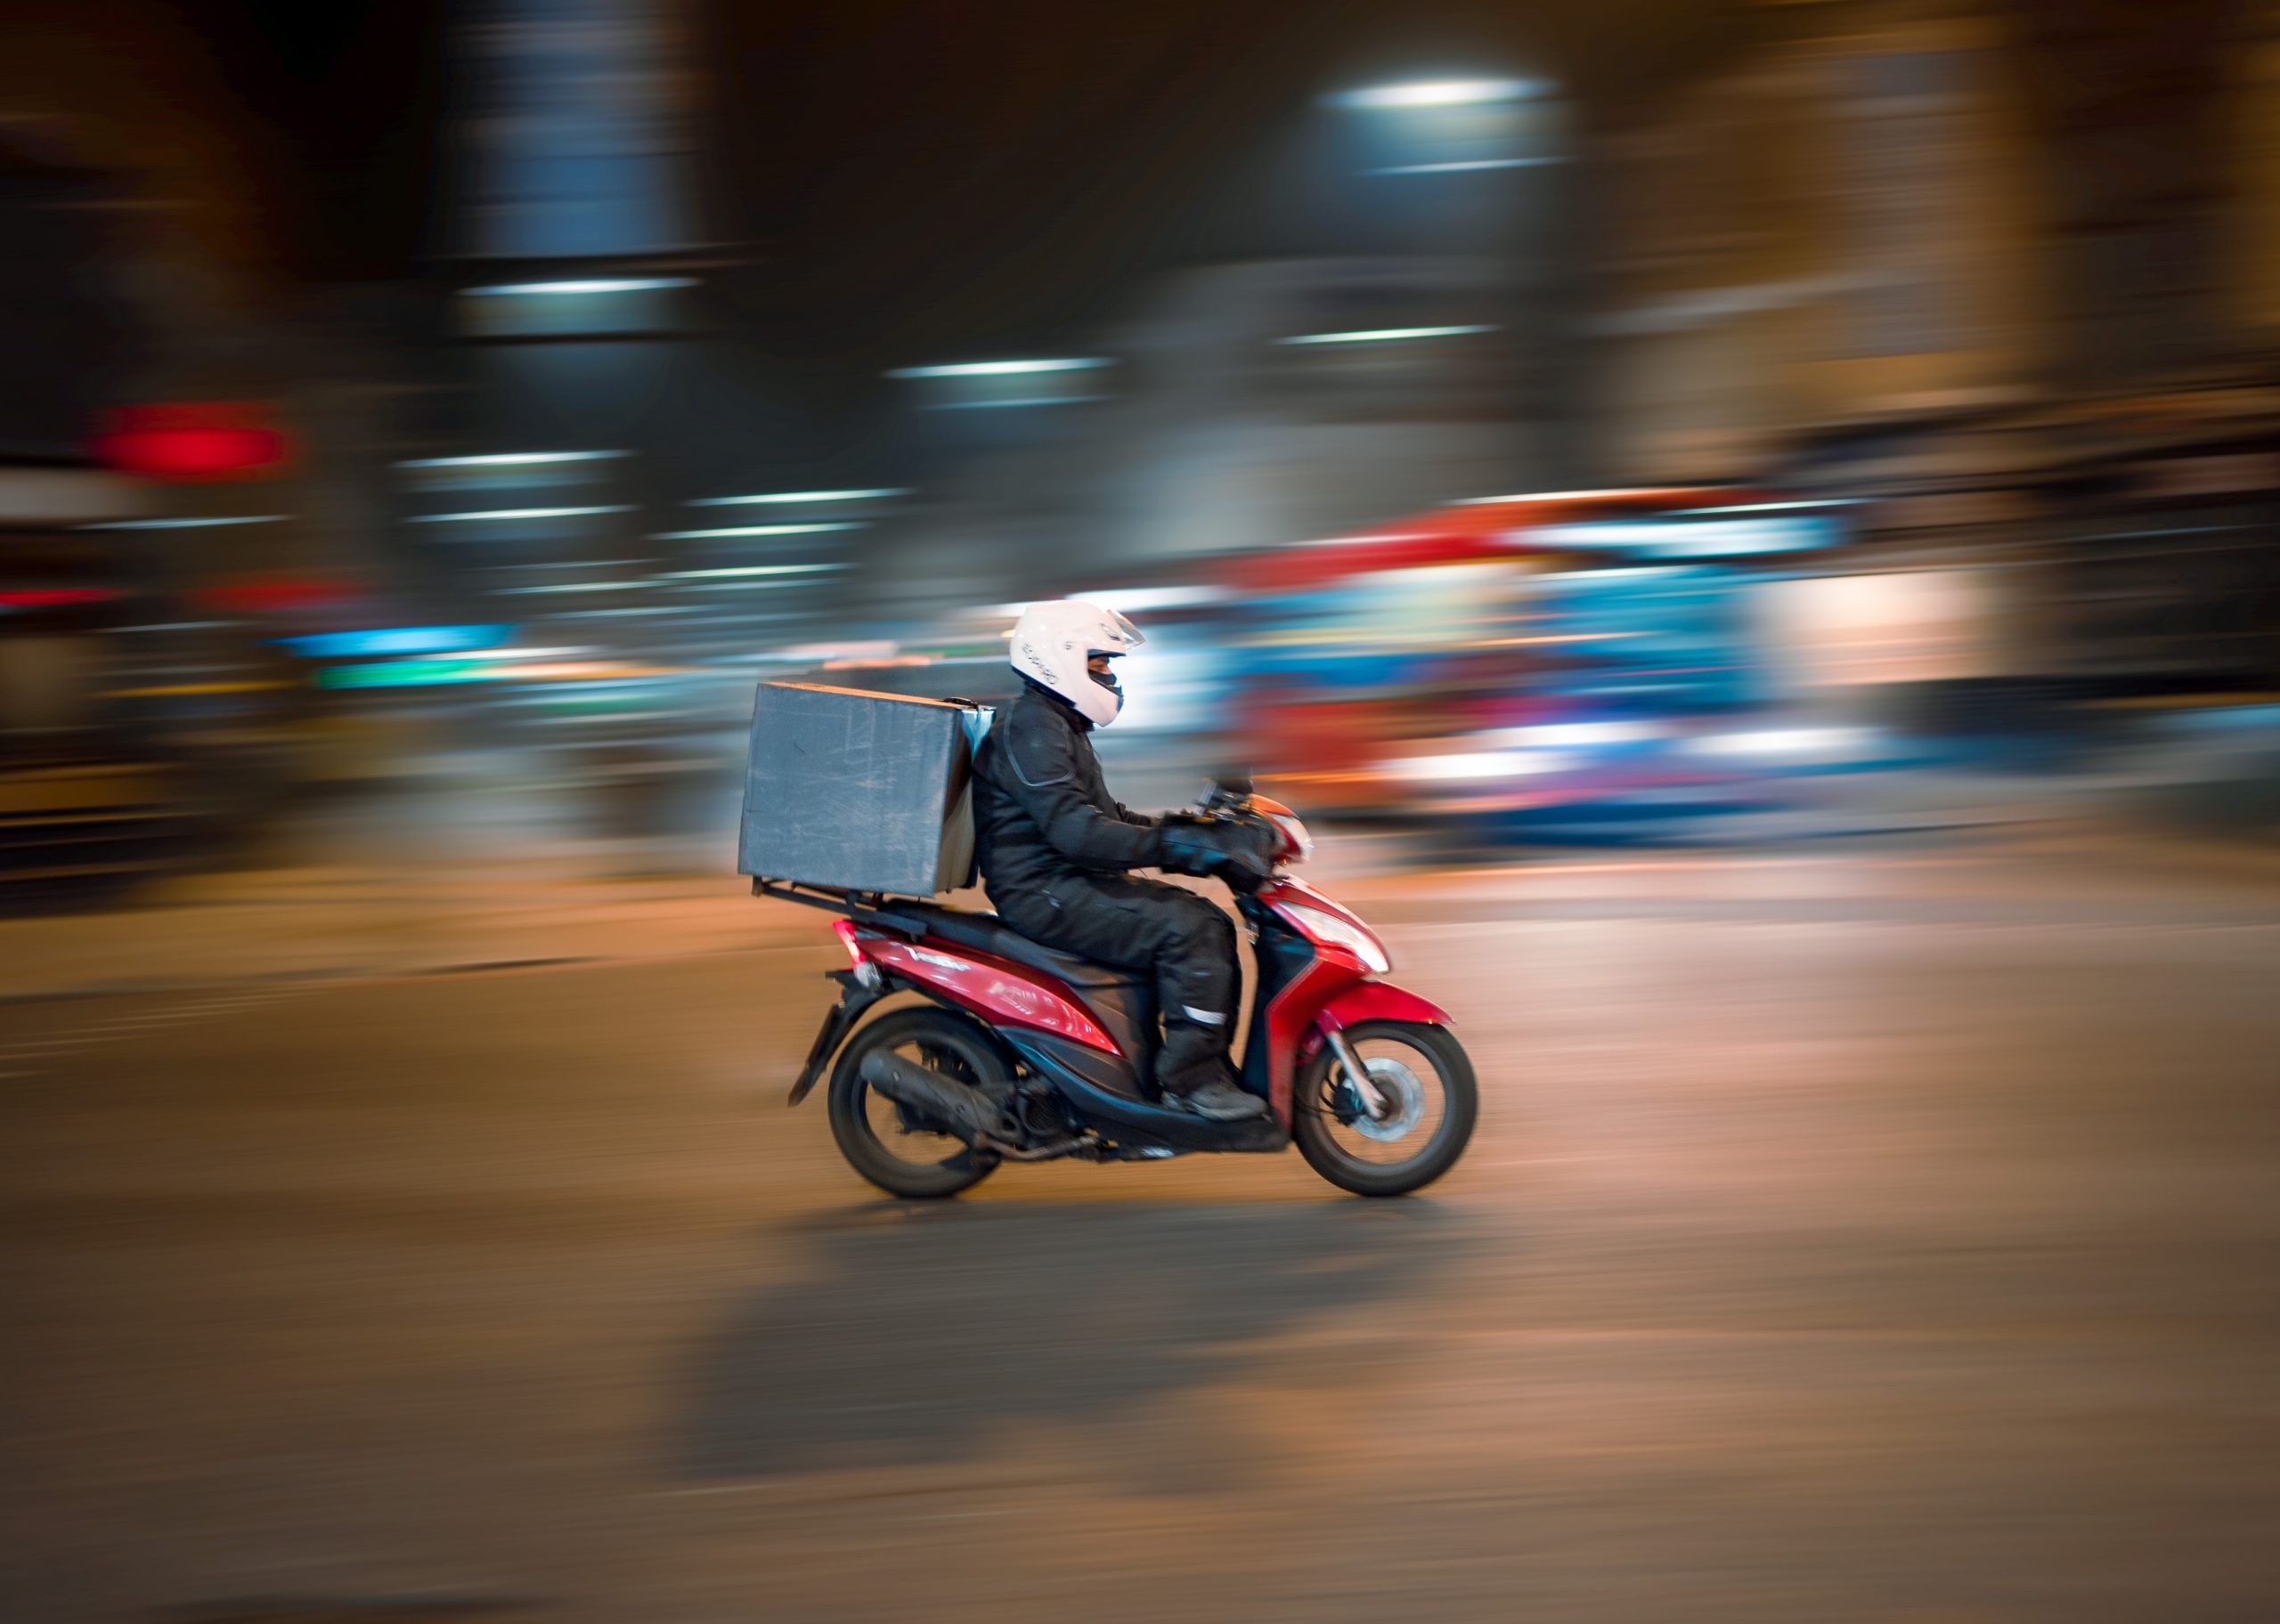 A delivery driver sits at the centre of the frame, dirving past on a red moped, wearing a white helmet. The background is blurred.